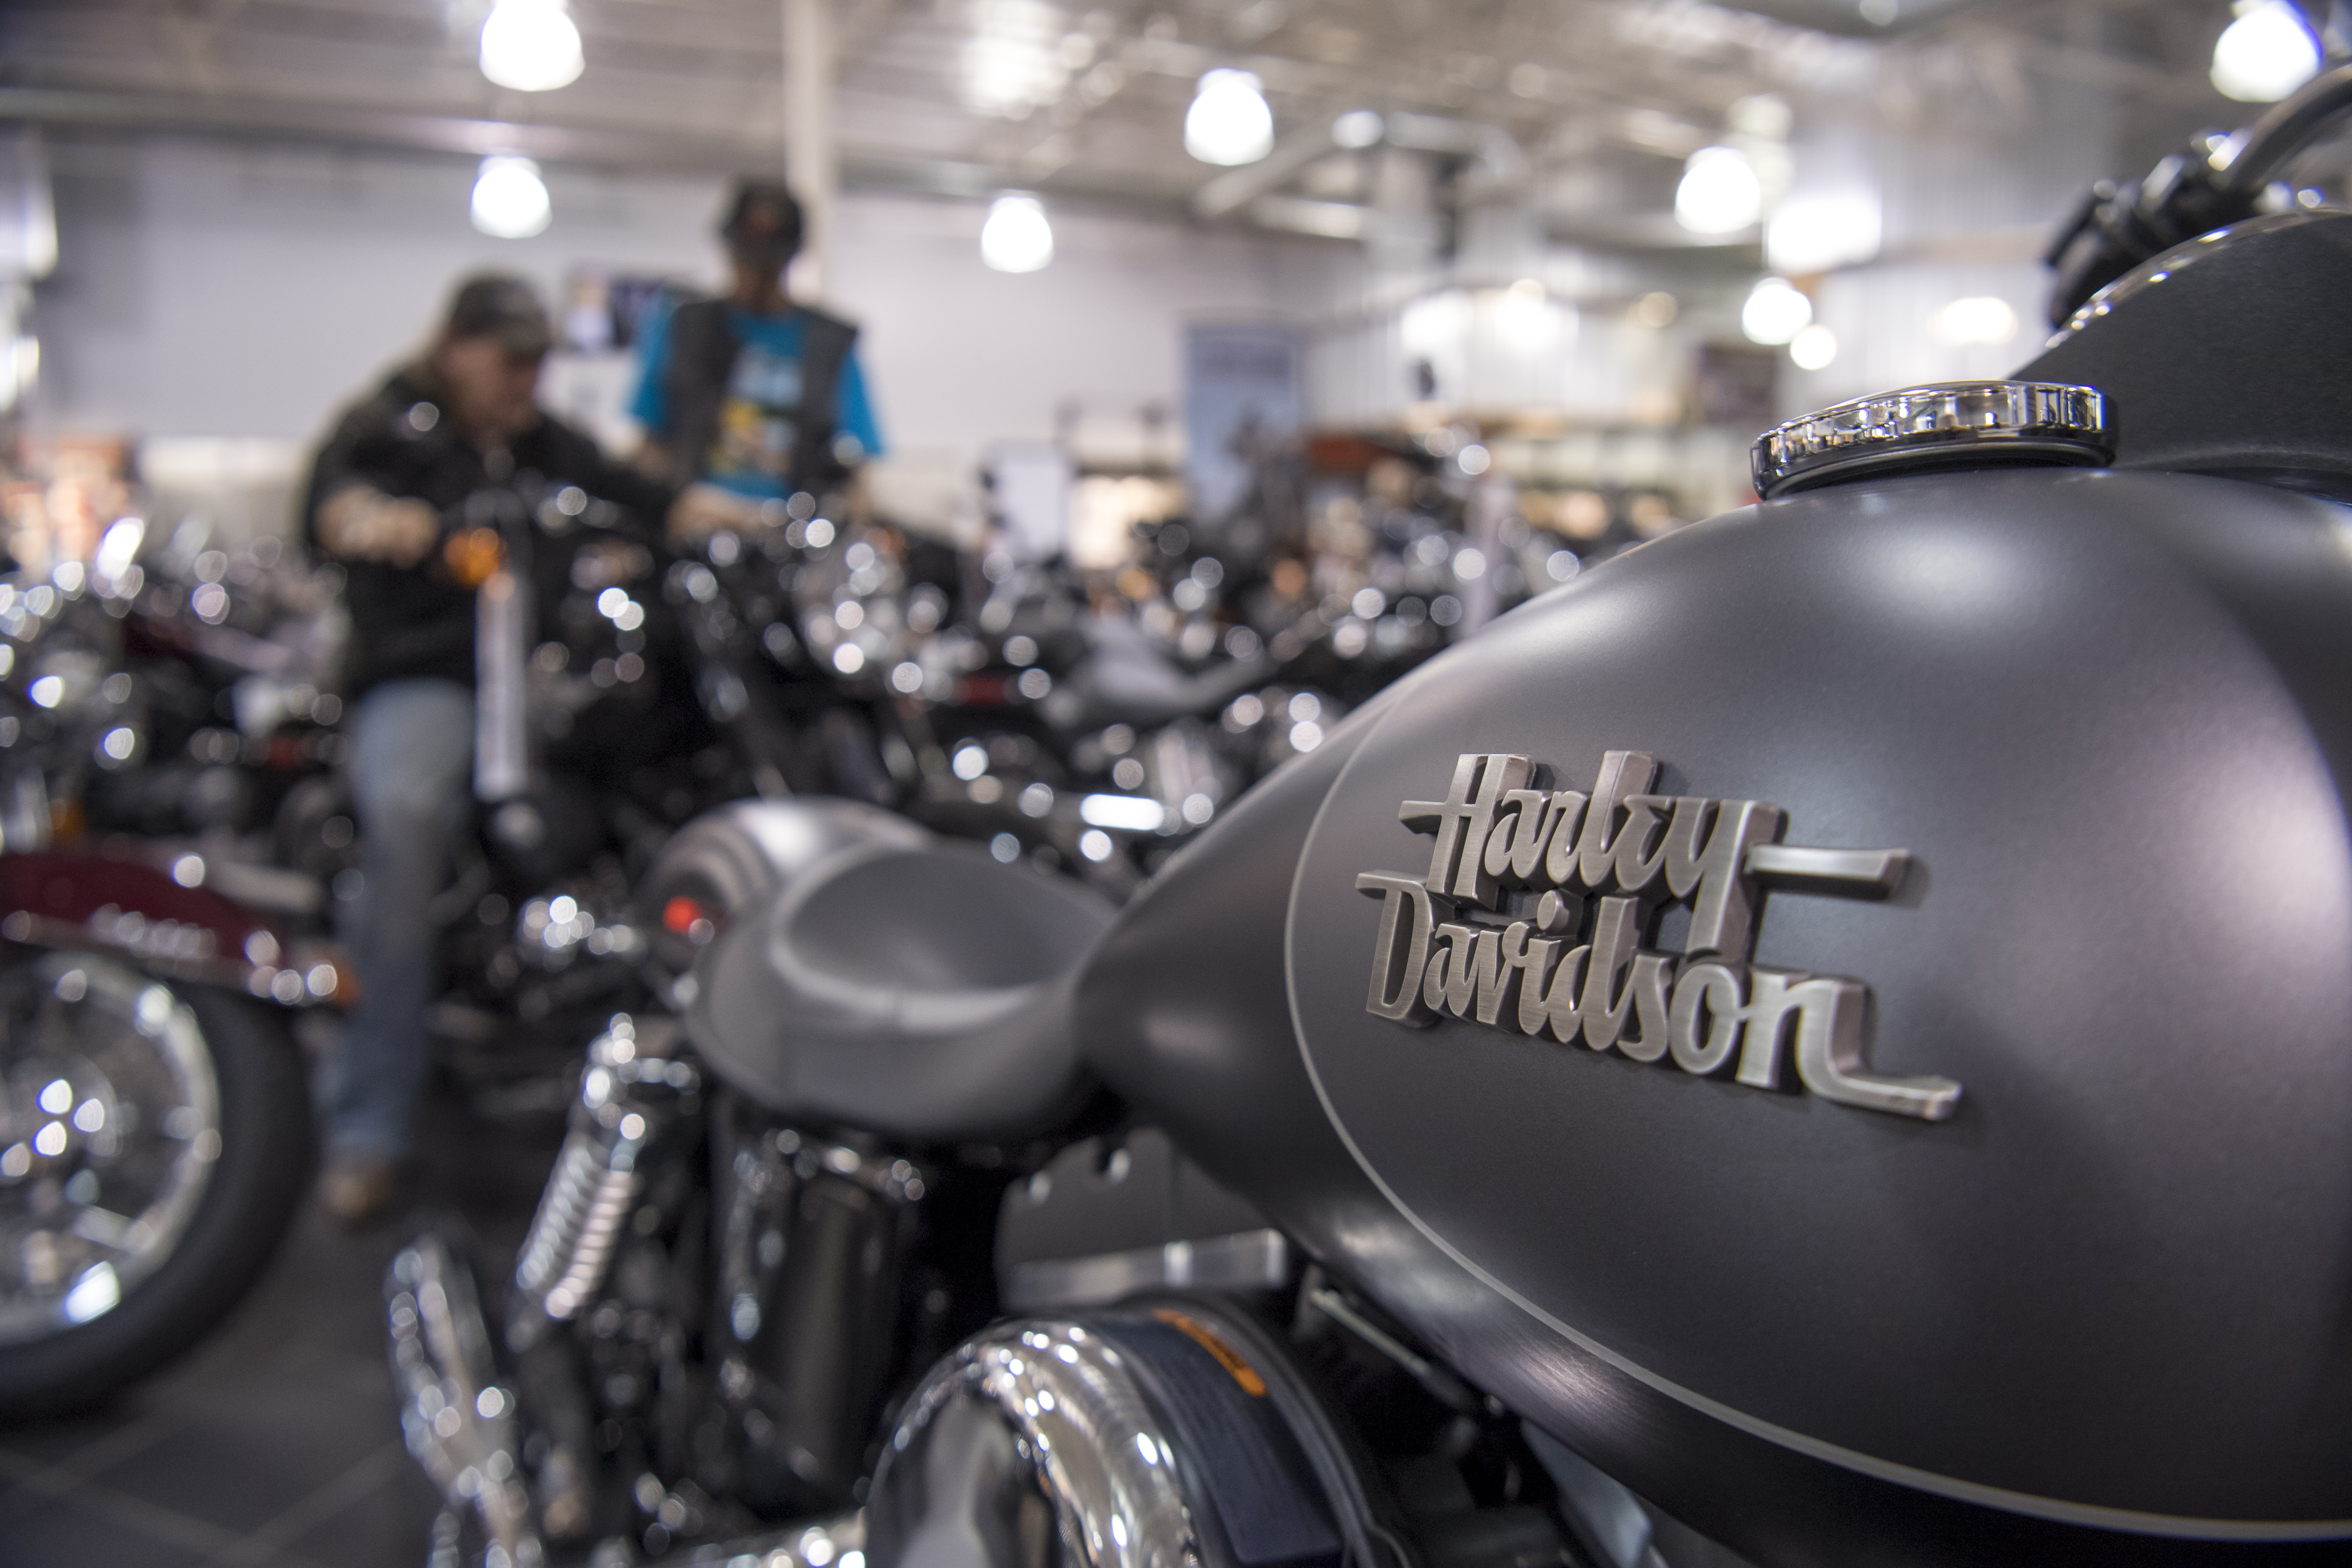 Harley-Davidson Plans Thailand Factory to Cater Asian Market | Fortune